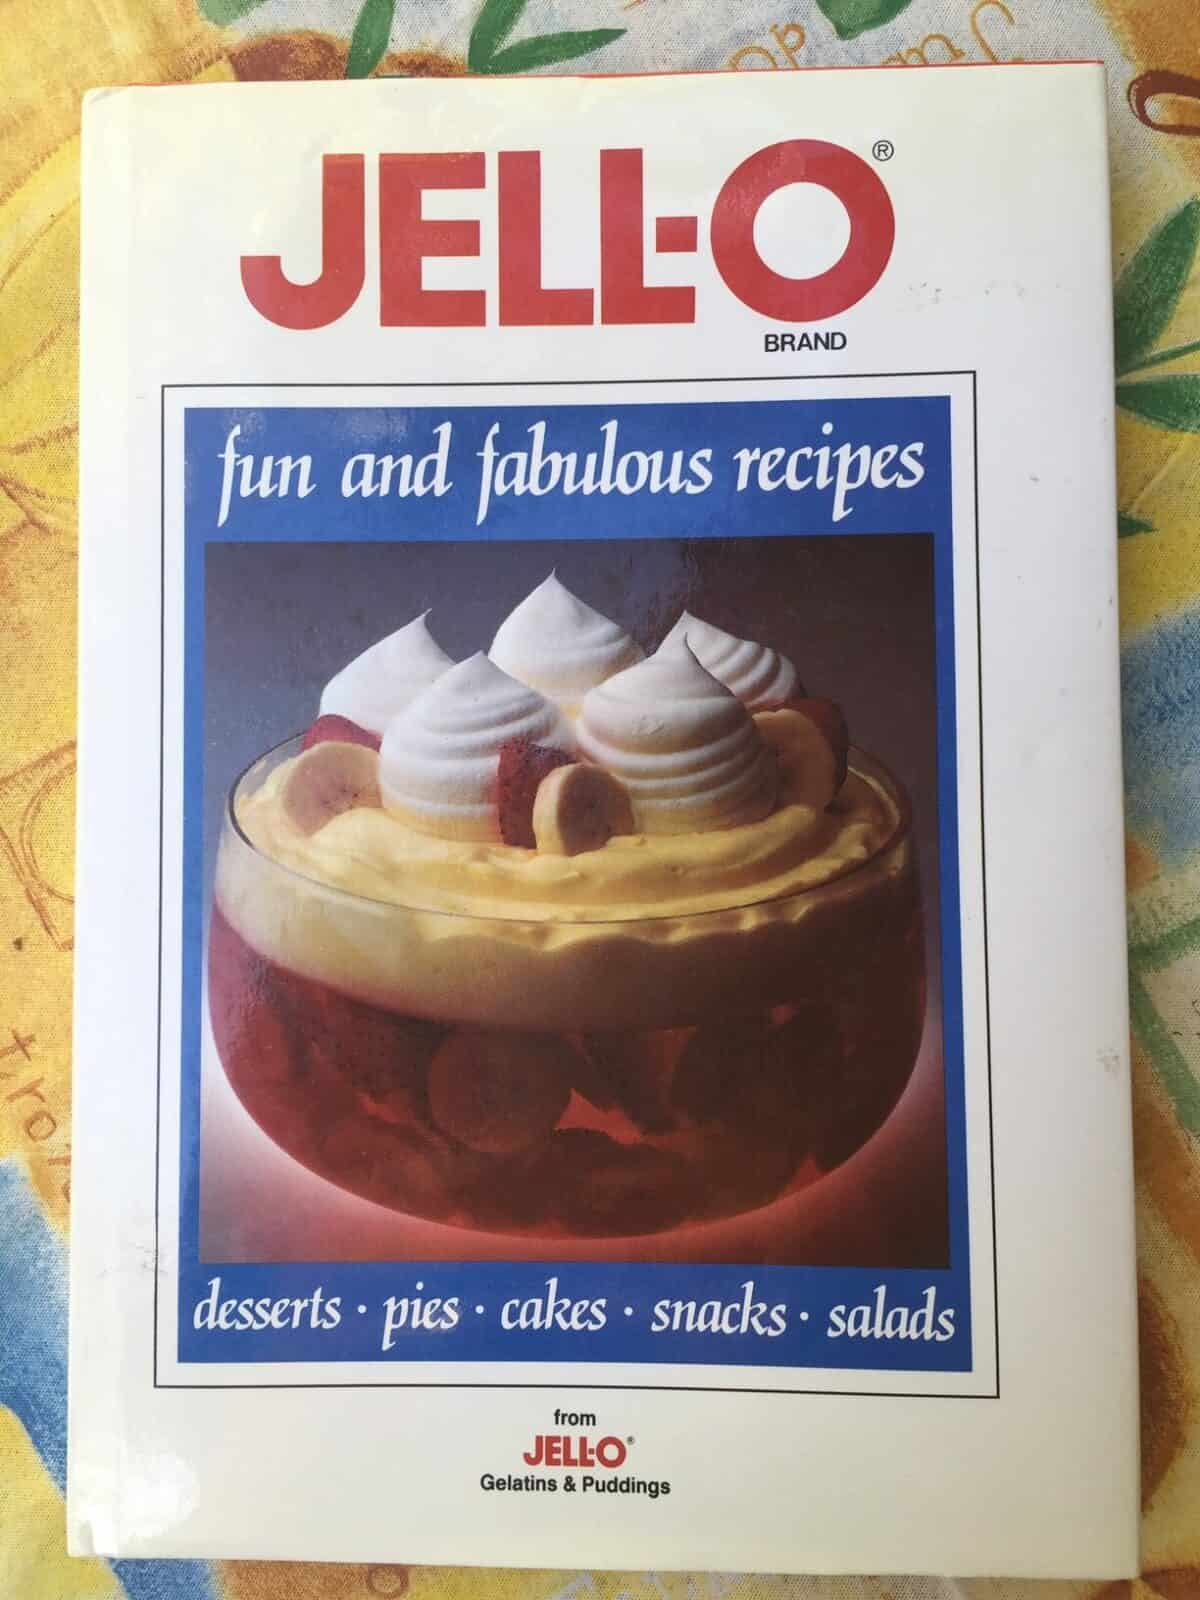 Book called Jell-o fun and fabulous recipes